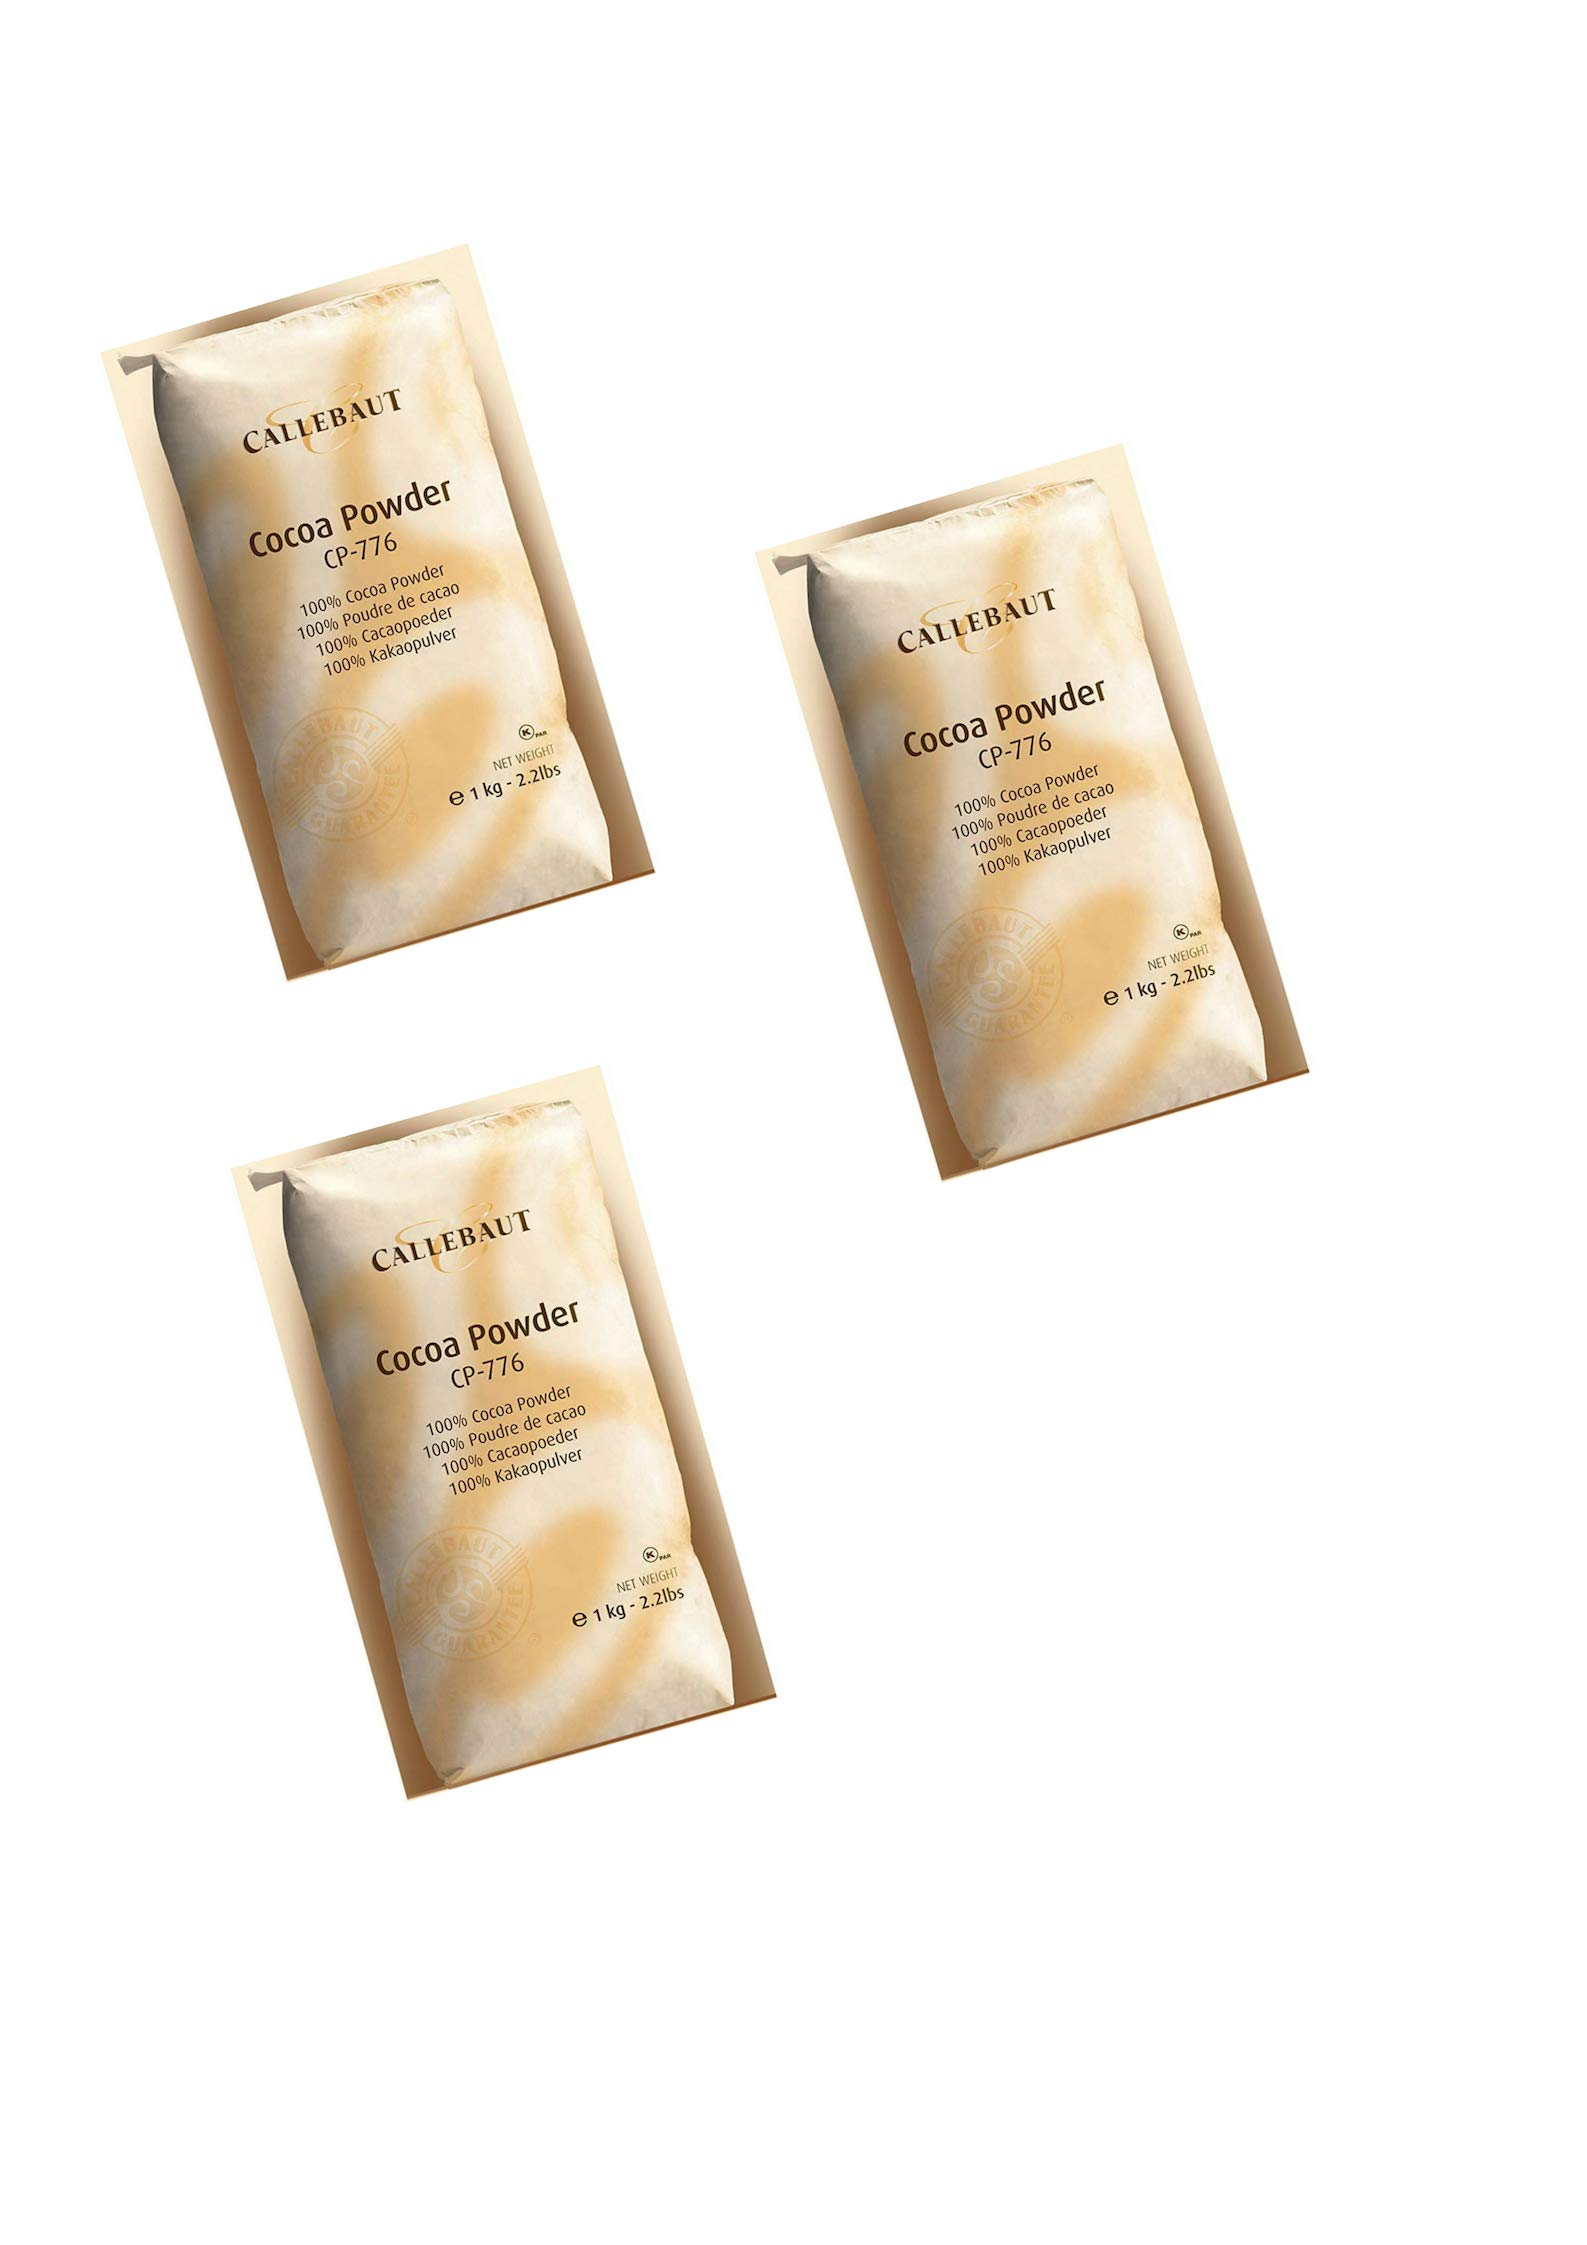 Callebaut Baking Cocoa Powder 2.2lb. bag in Cook's Illustrated (3pack)